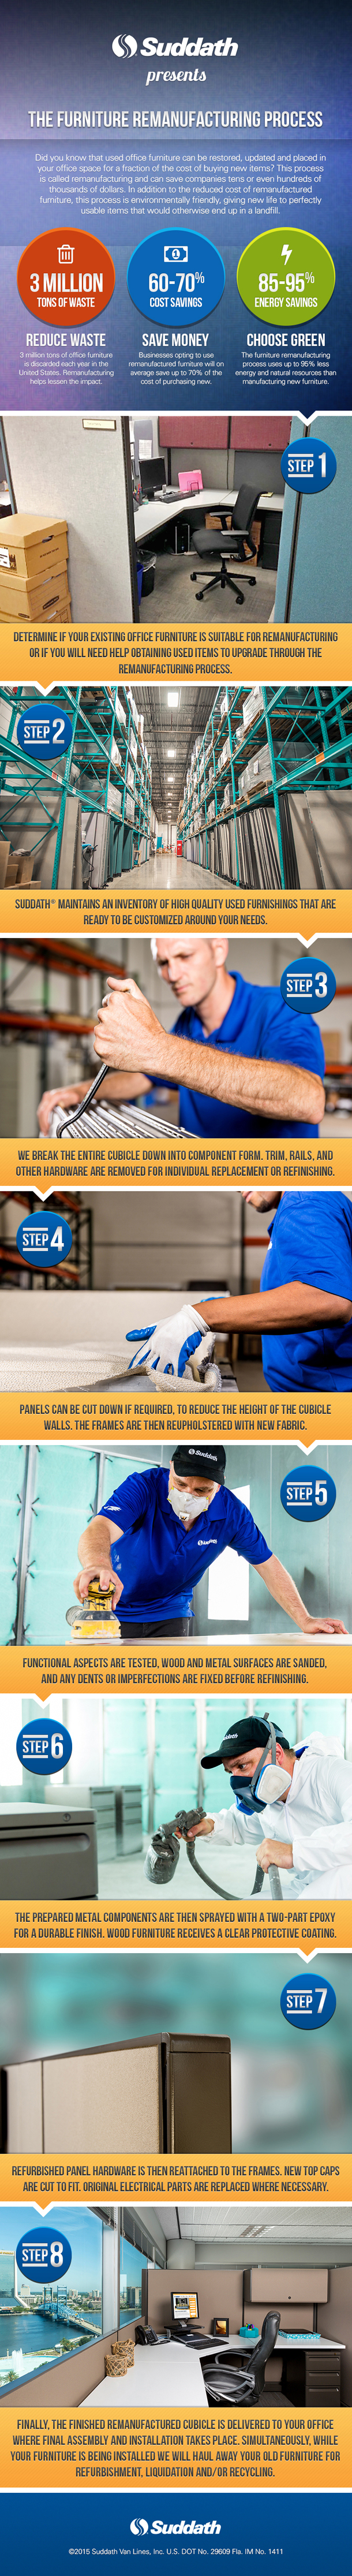 The Furniture Remanufacturing Process